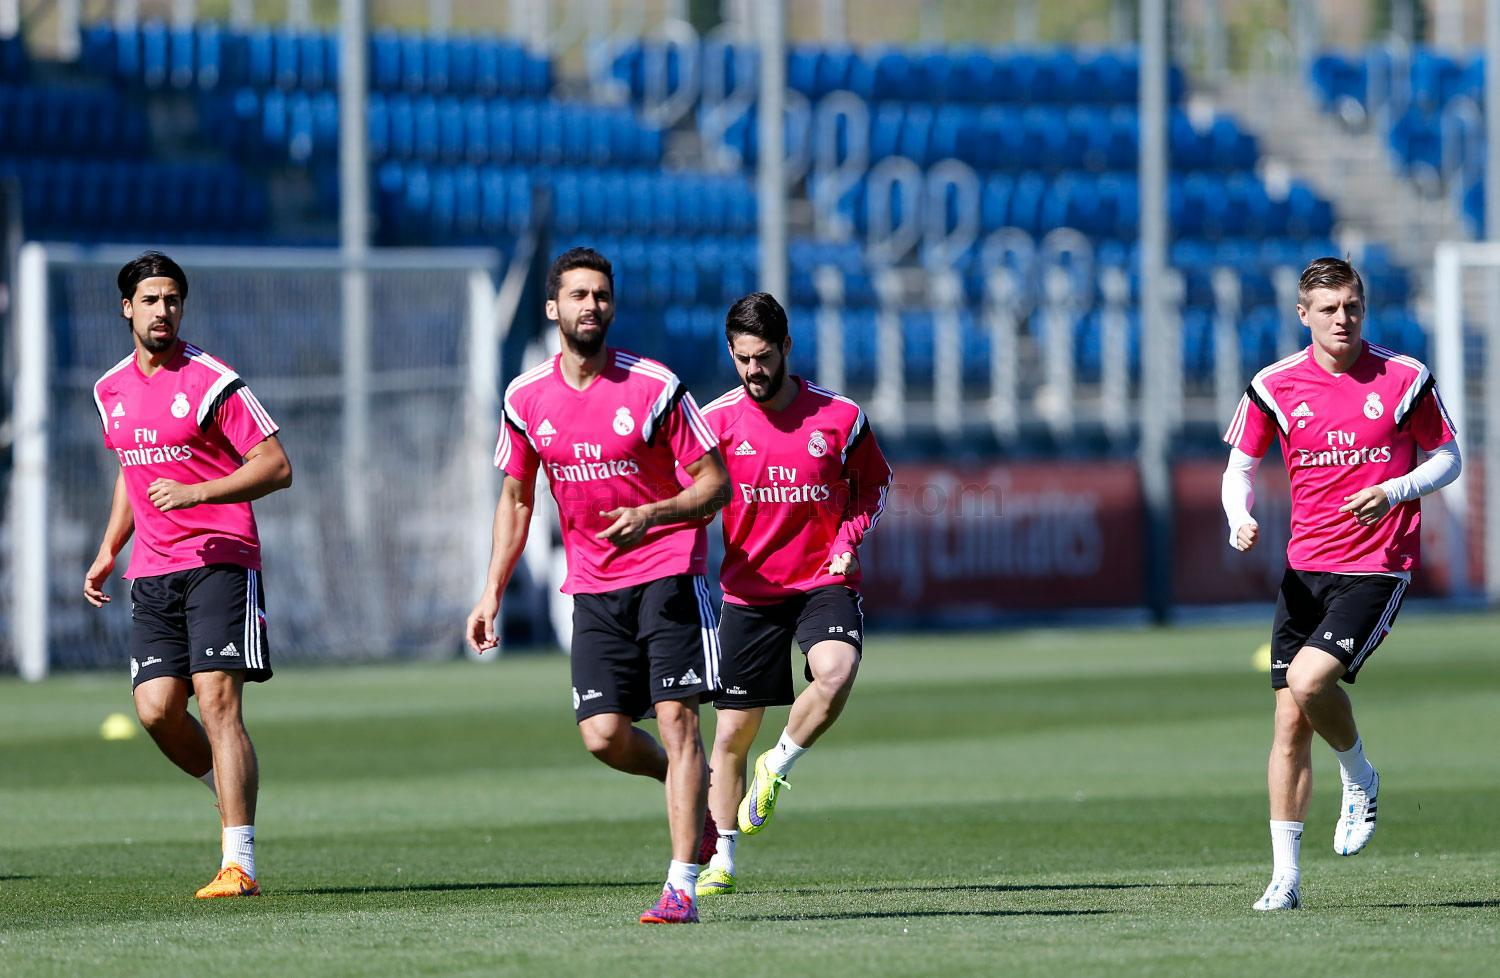 Real Madrid - Entrenamiento del Real Madrid - 20-04-2015